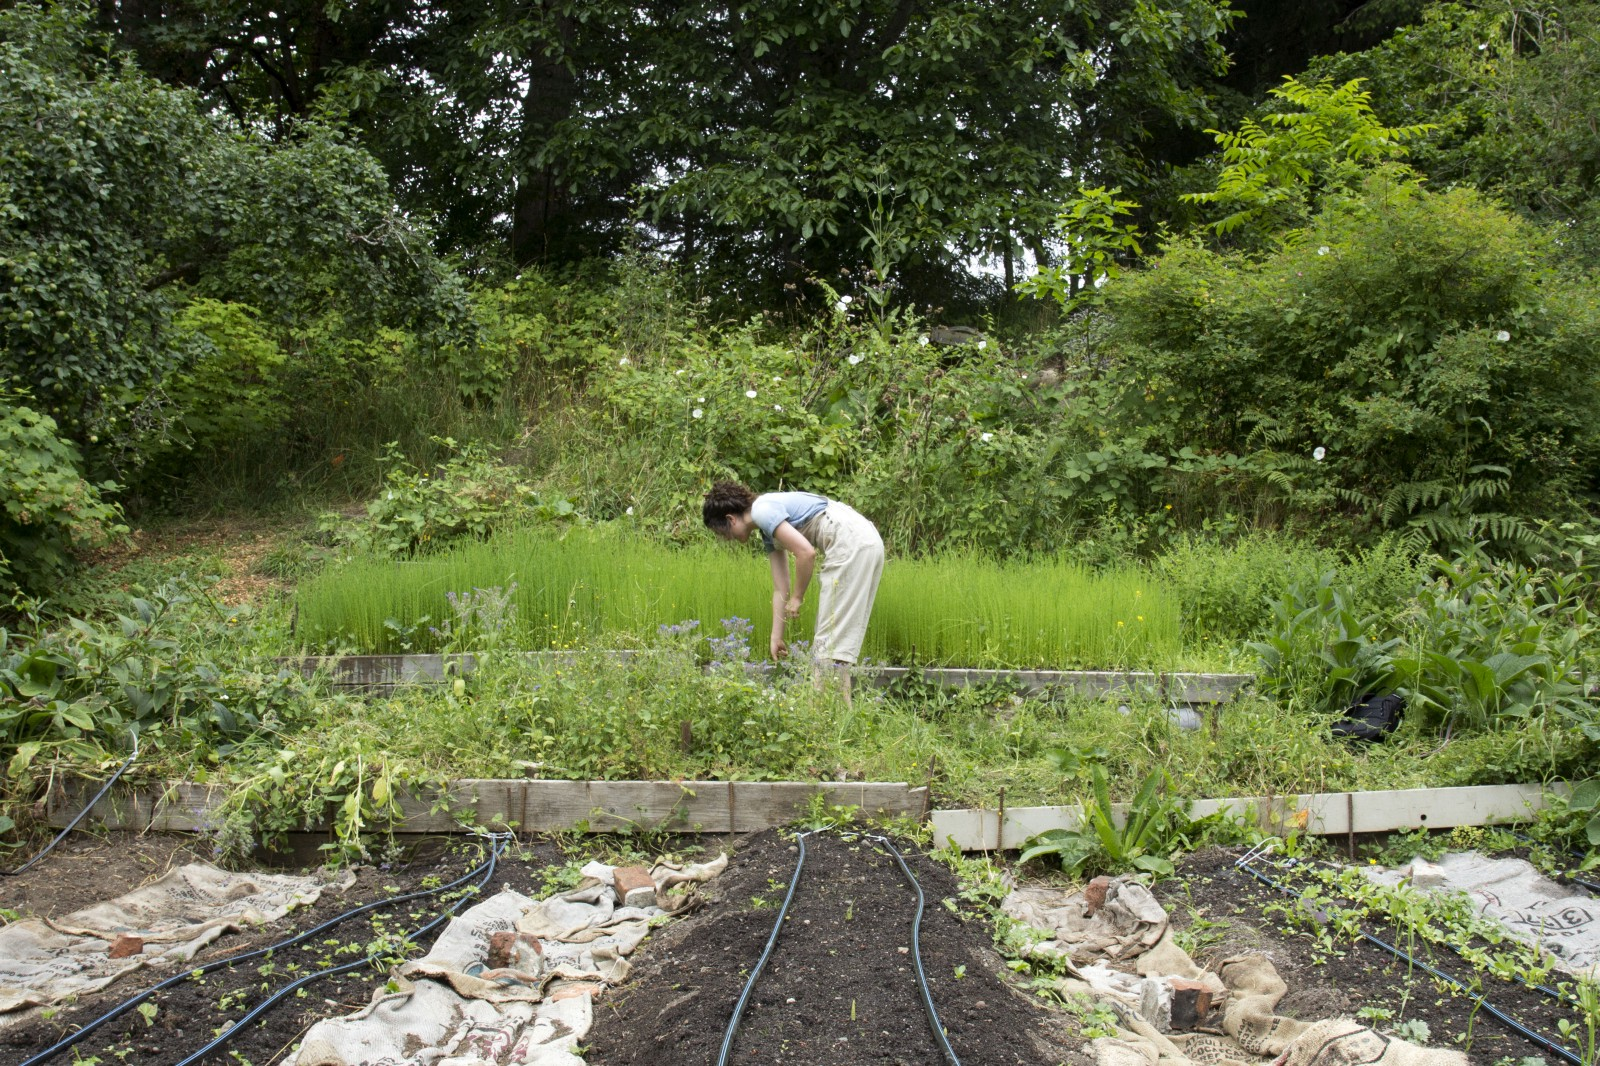 In Mid May, Erin Worked With Fairhaven Professor John Tuxill To Plant A  Patch Of Flax In Fairhavenu0027s Outback Farm. The Patch Is About The Size ...